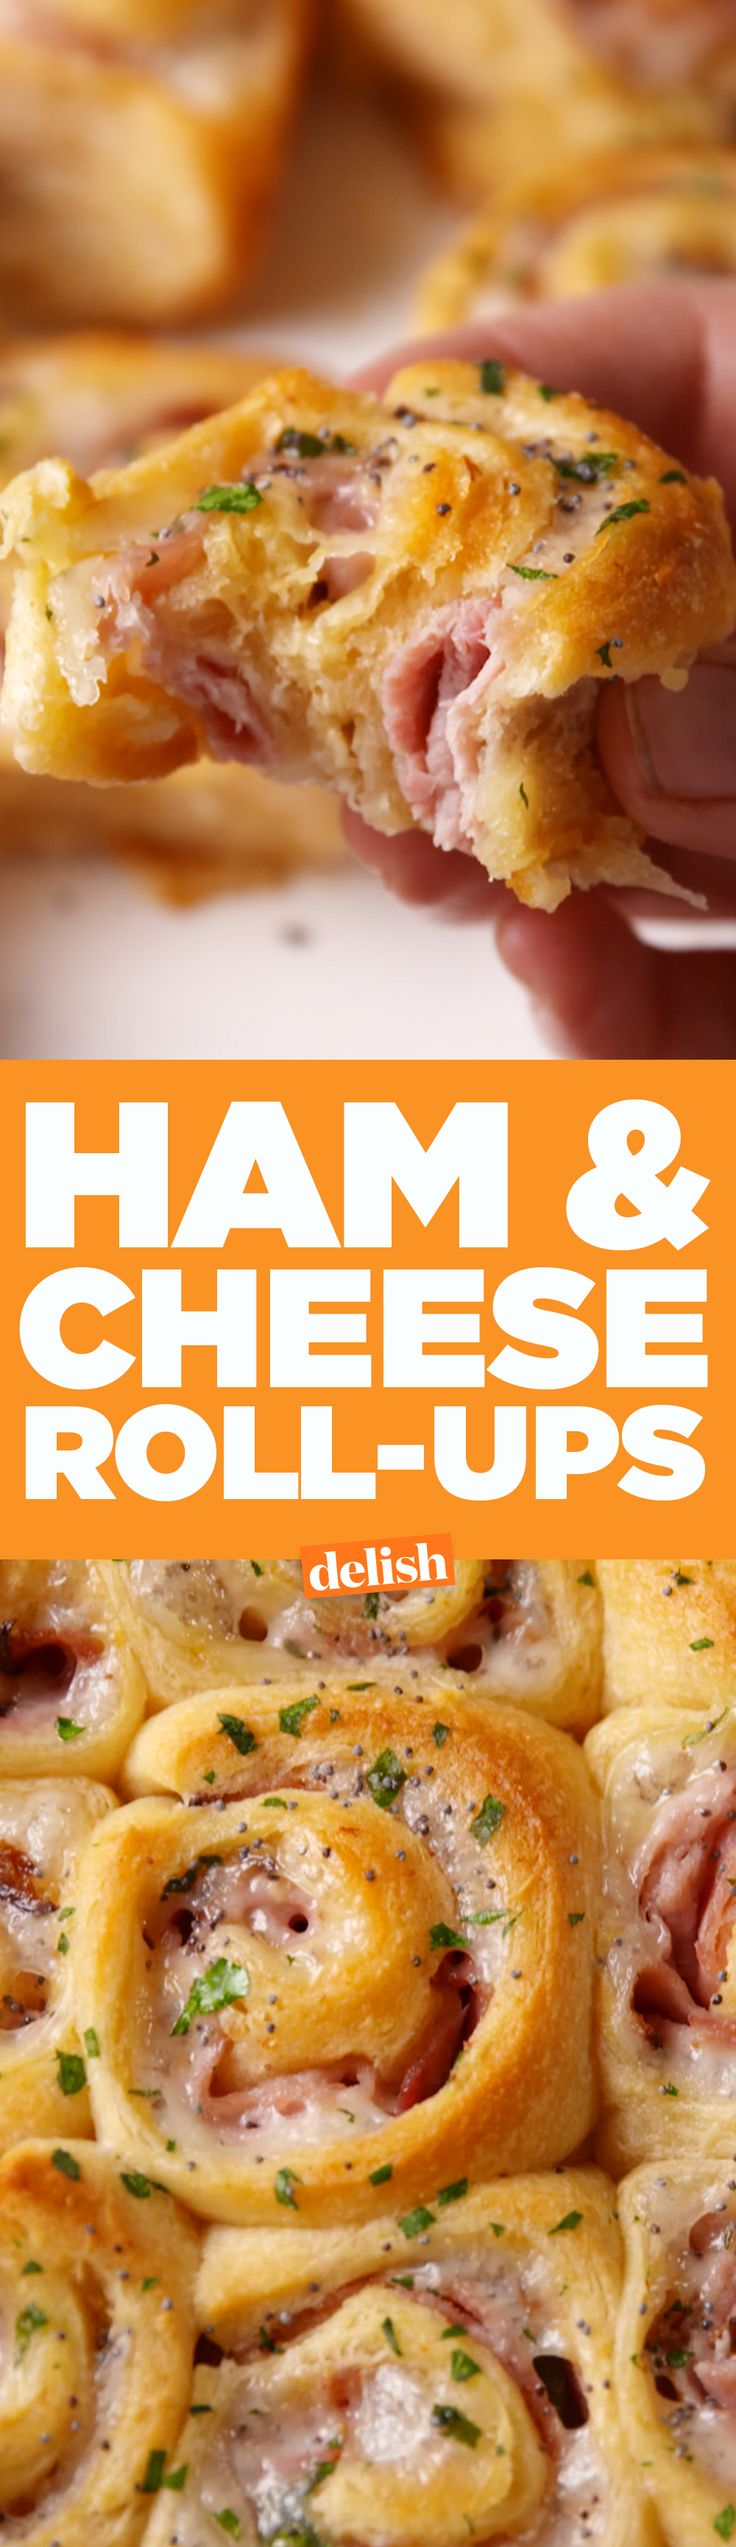 Ham & Cheese Roll-Ups are the most genius way to use Pillsbury crescent rolls. Get the recipe on Delish.com. (Favorite Desserts Crescent Rolls)